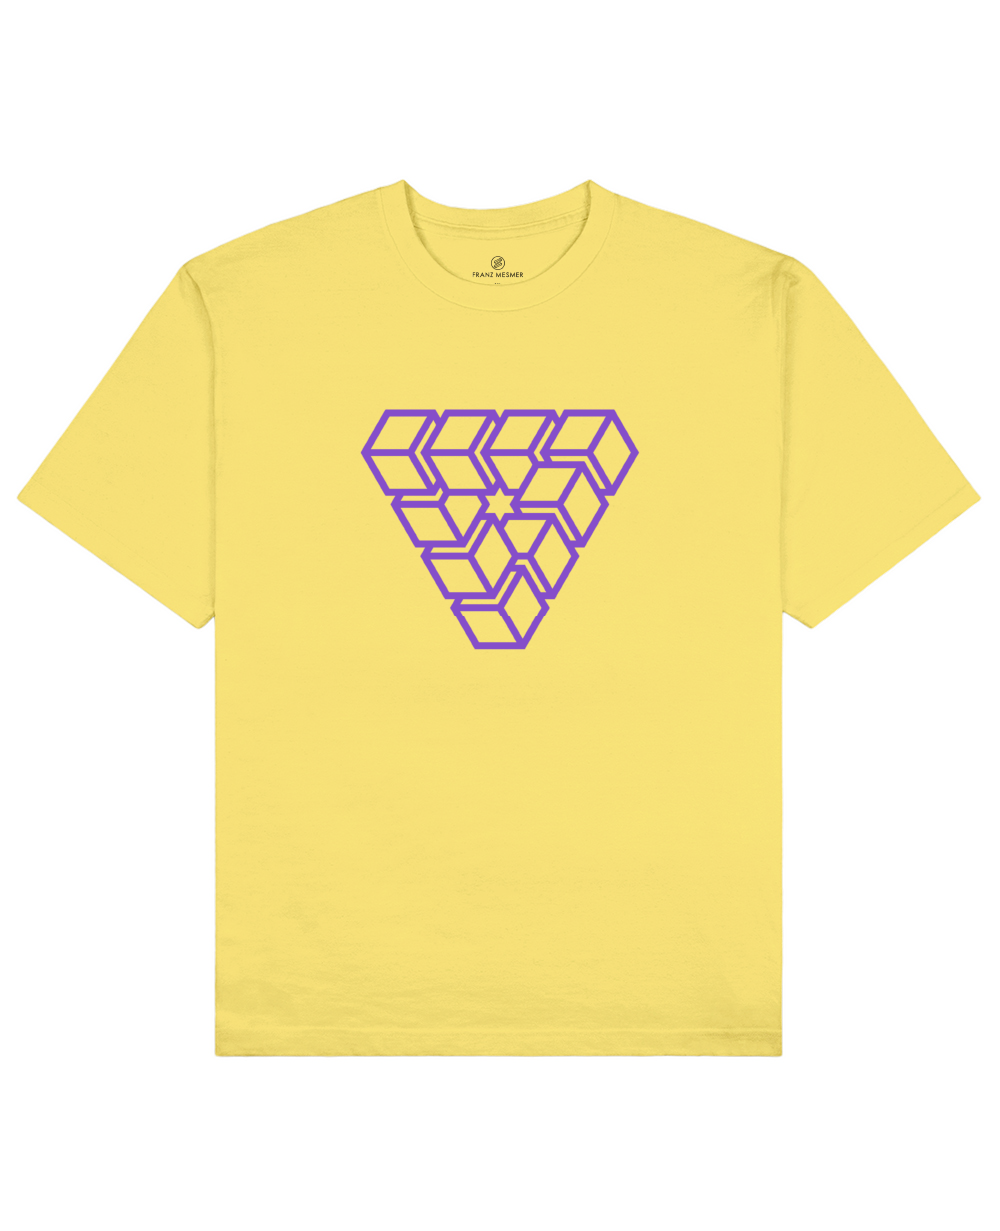 Impossible Shape Print T-Shirt in Light Yellow - T-Shirts - Franz Mesmer - BRANMA